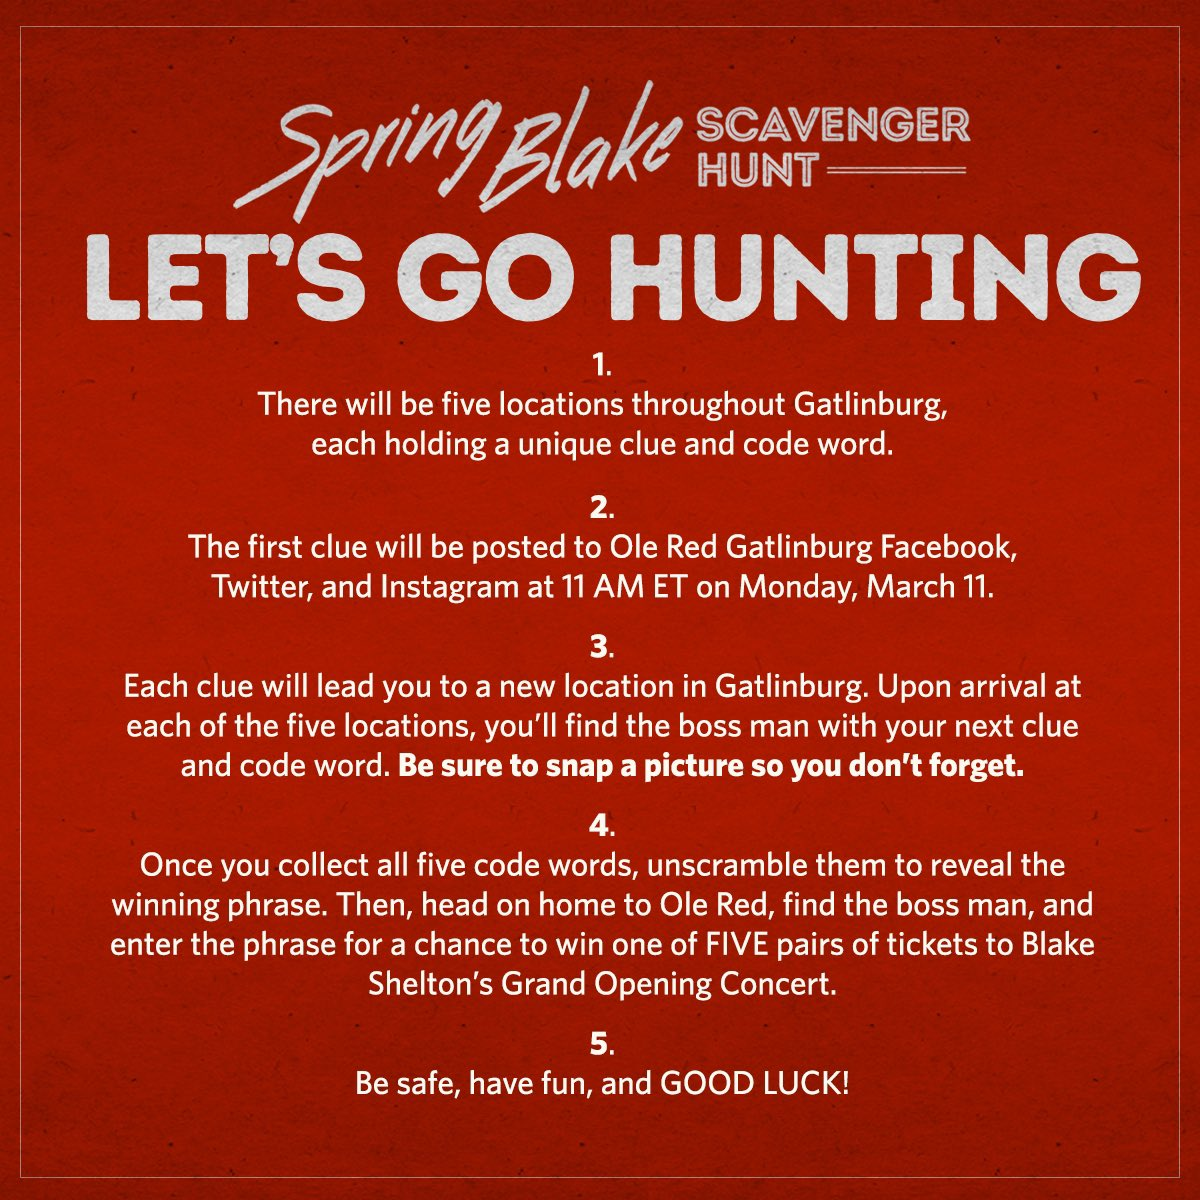 Let's go hunting y'all! Head over to @OleRedGburg's account to get the first clue tomorrow at 11am ET! - Team BS https://t.co/bx4m6kkbV9